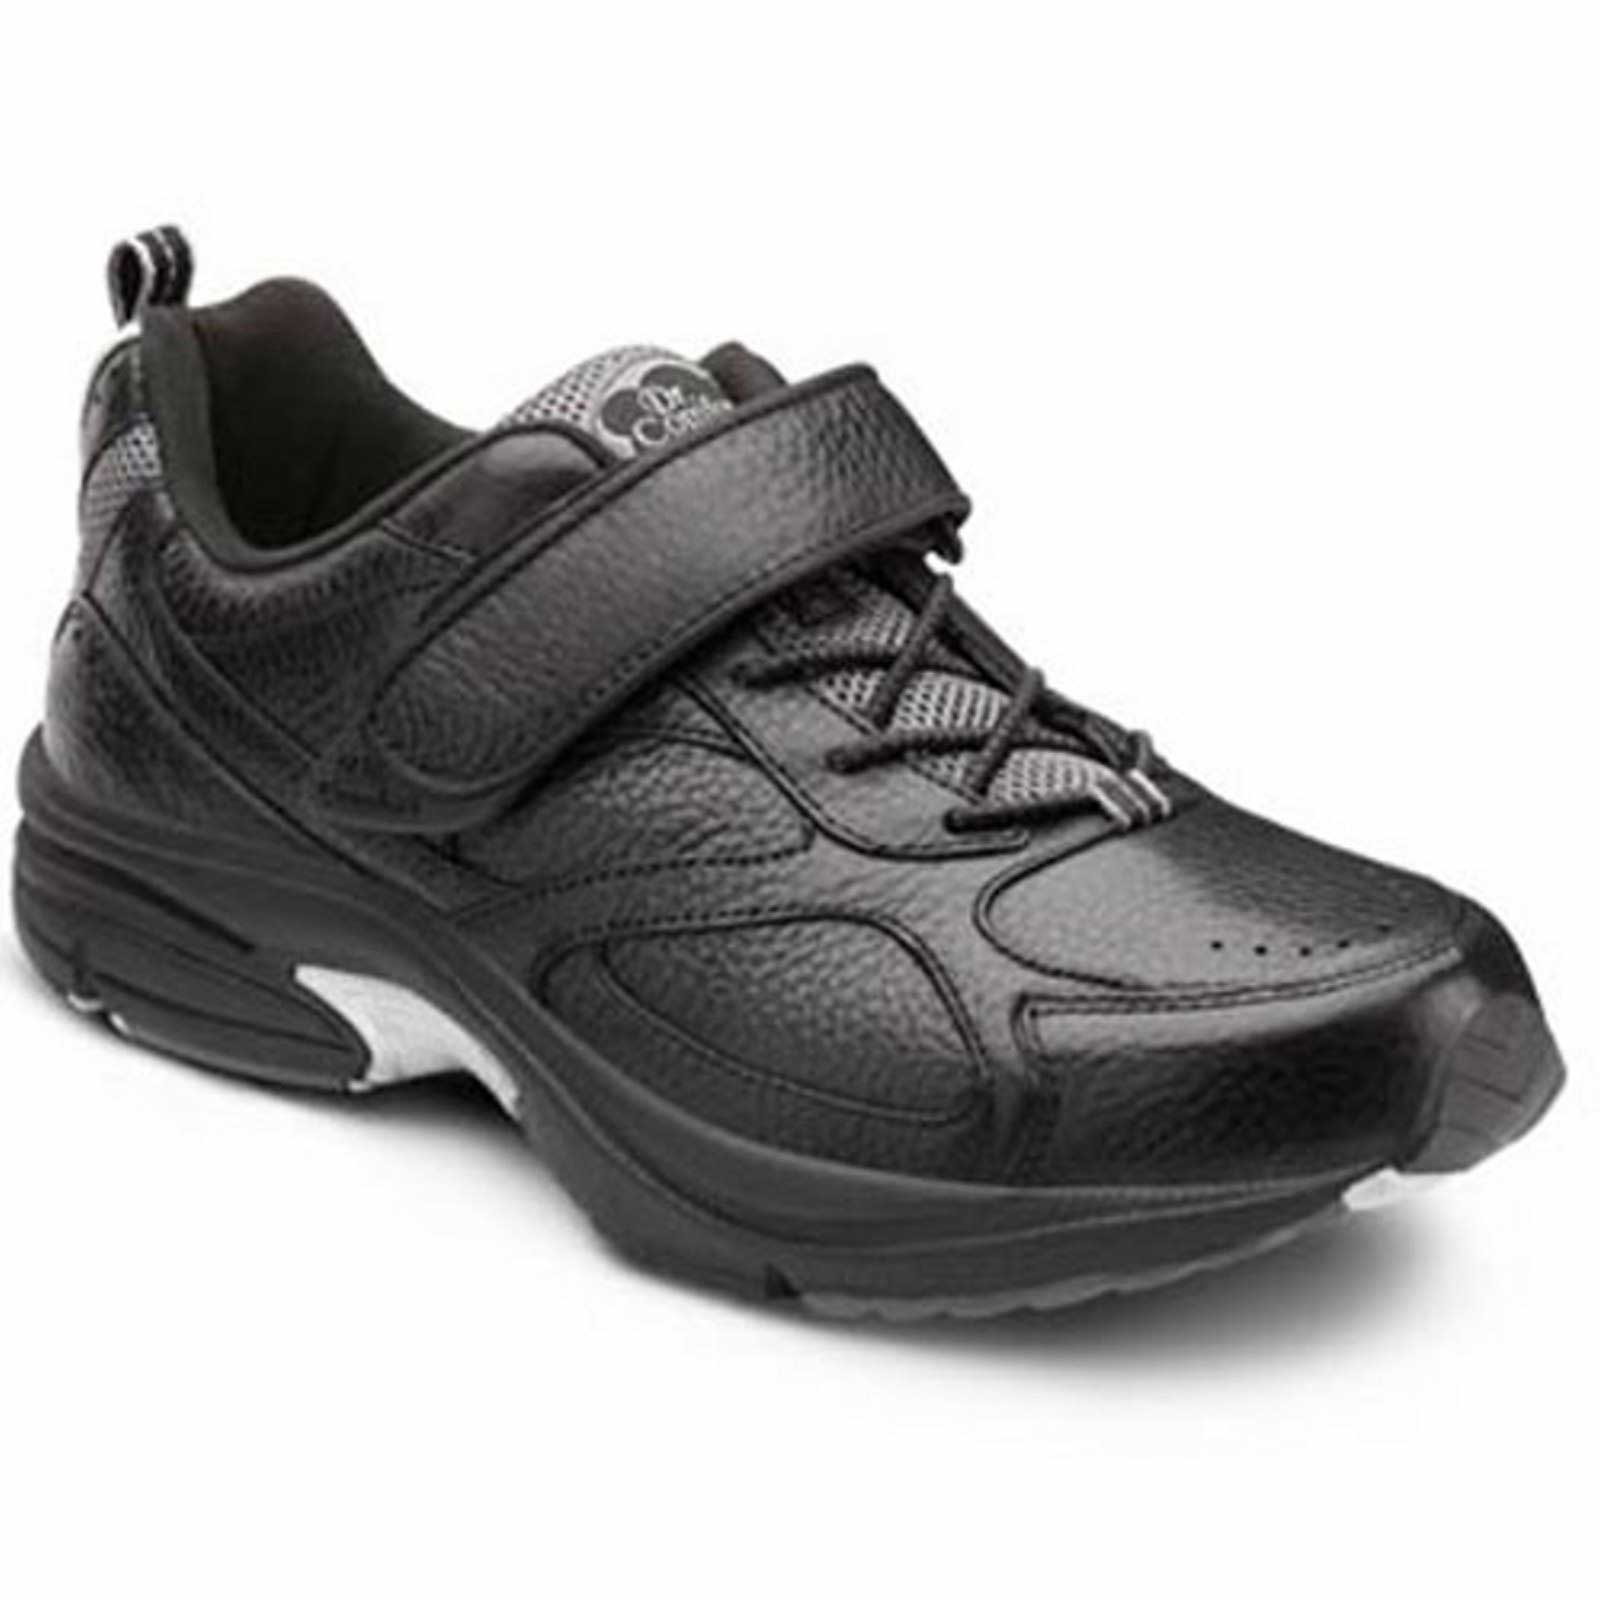 Champion Sports Comfort Shoes